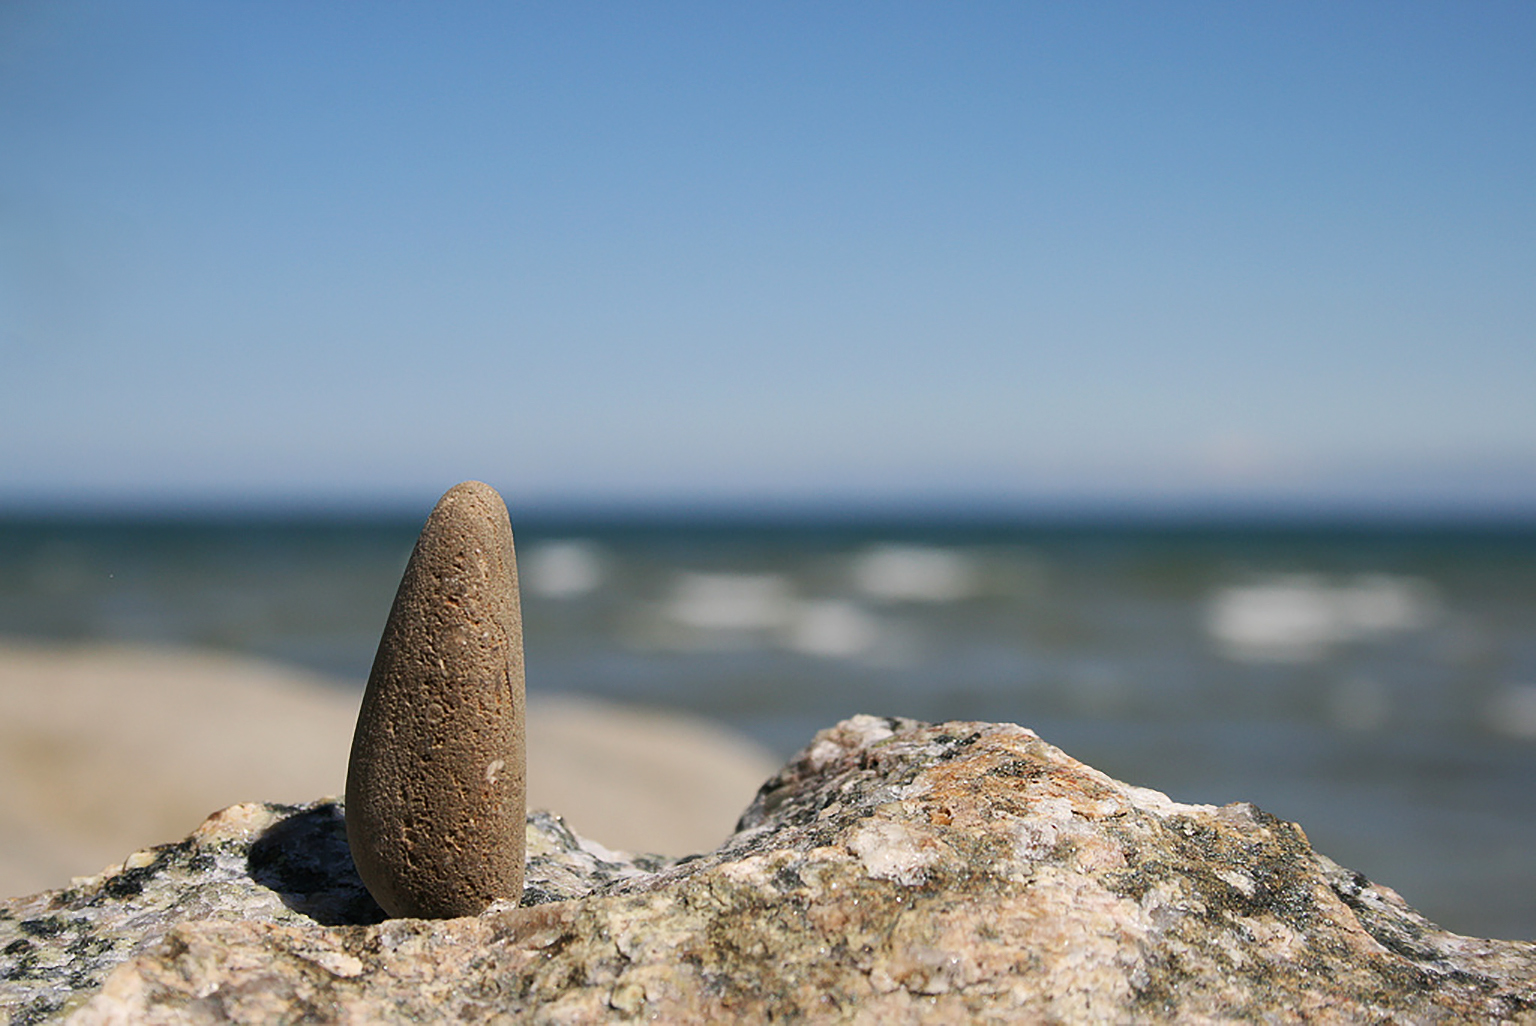 A detail of Sauble Beach in Bruce County, Ontario.